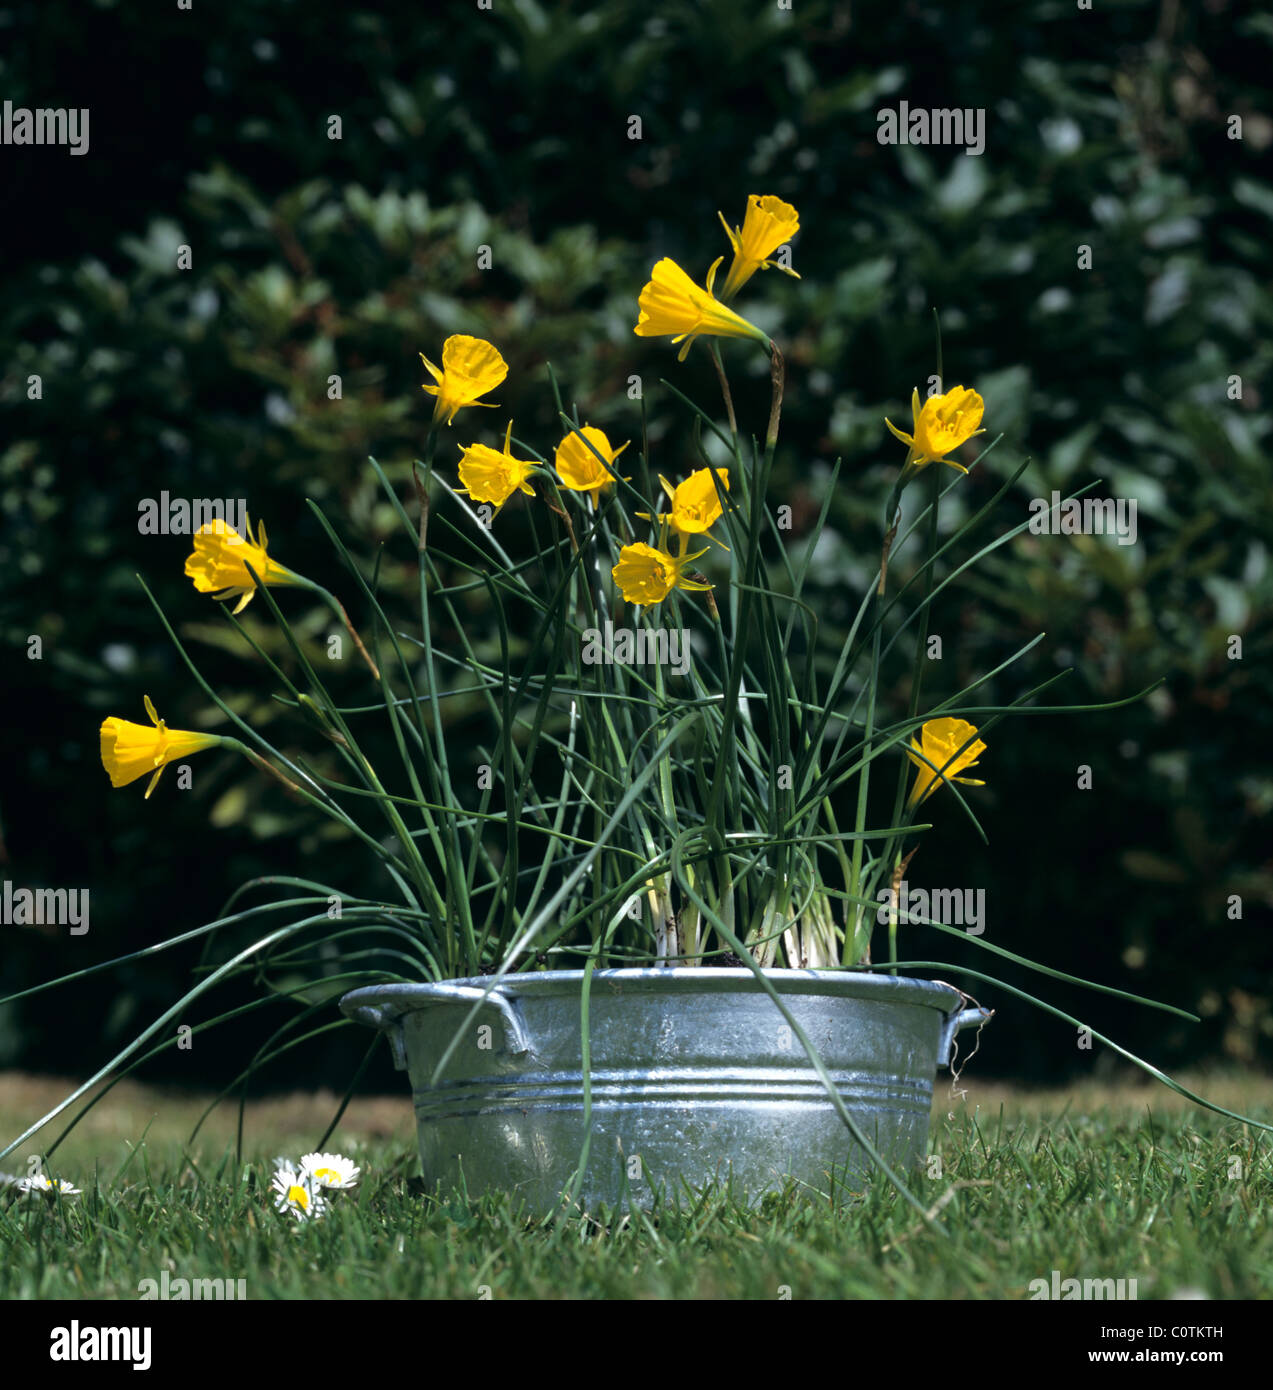 Narcissus bulbocodium flowering in a galvanised container - Stock Image